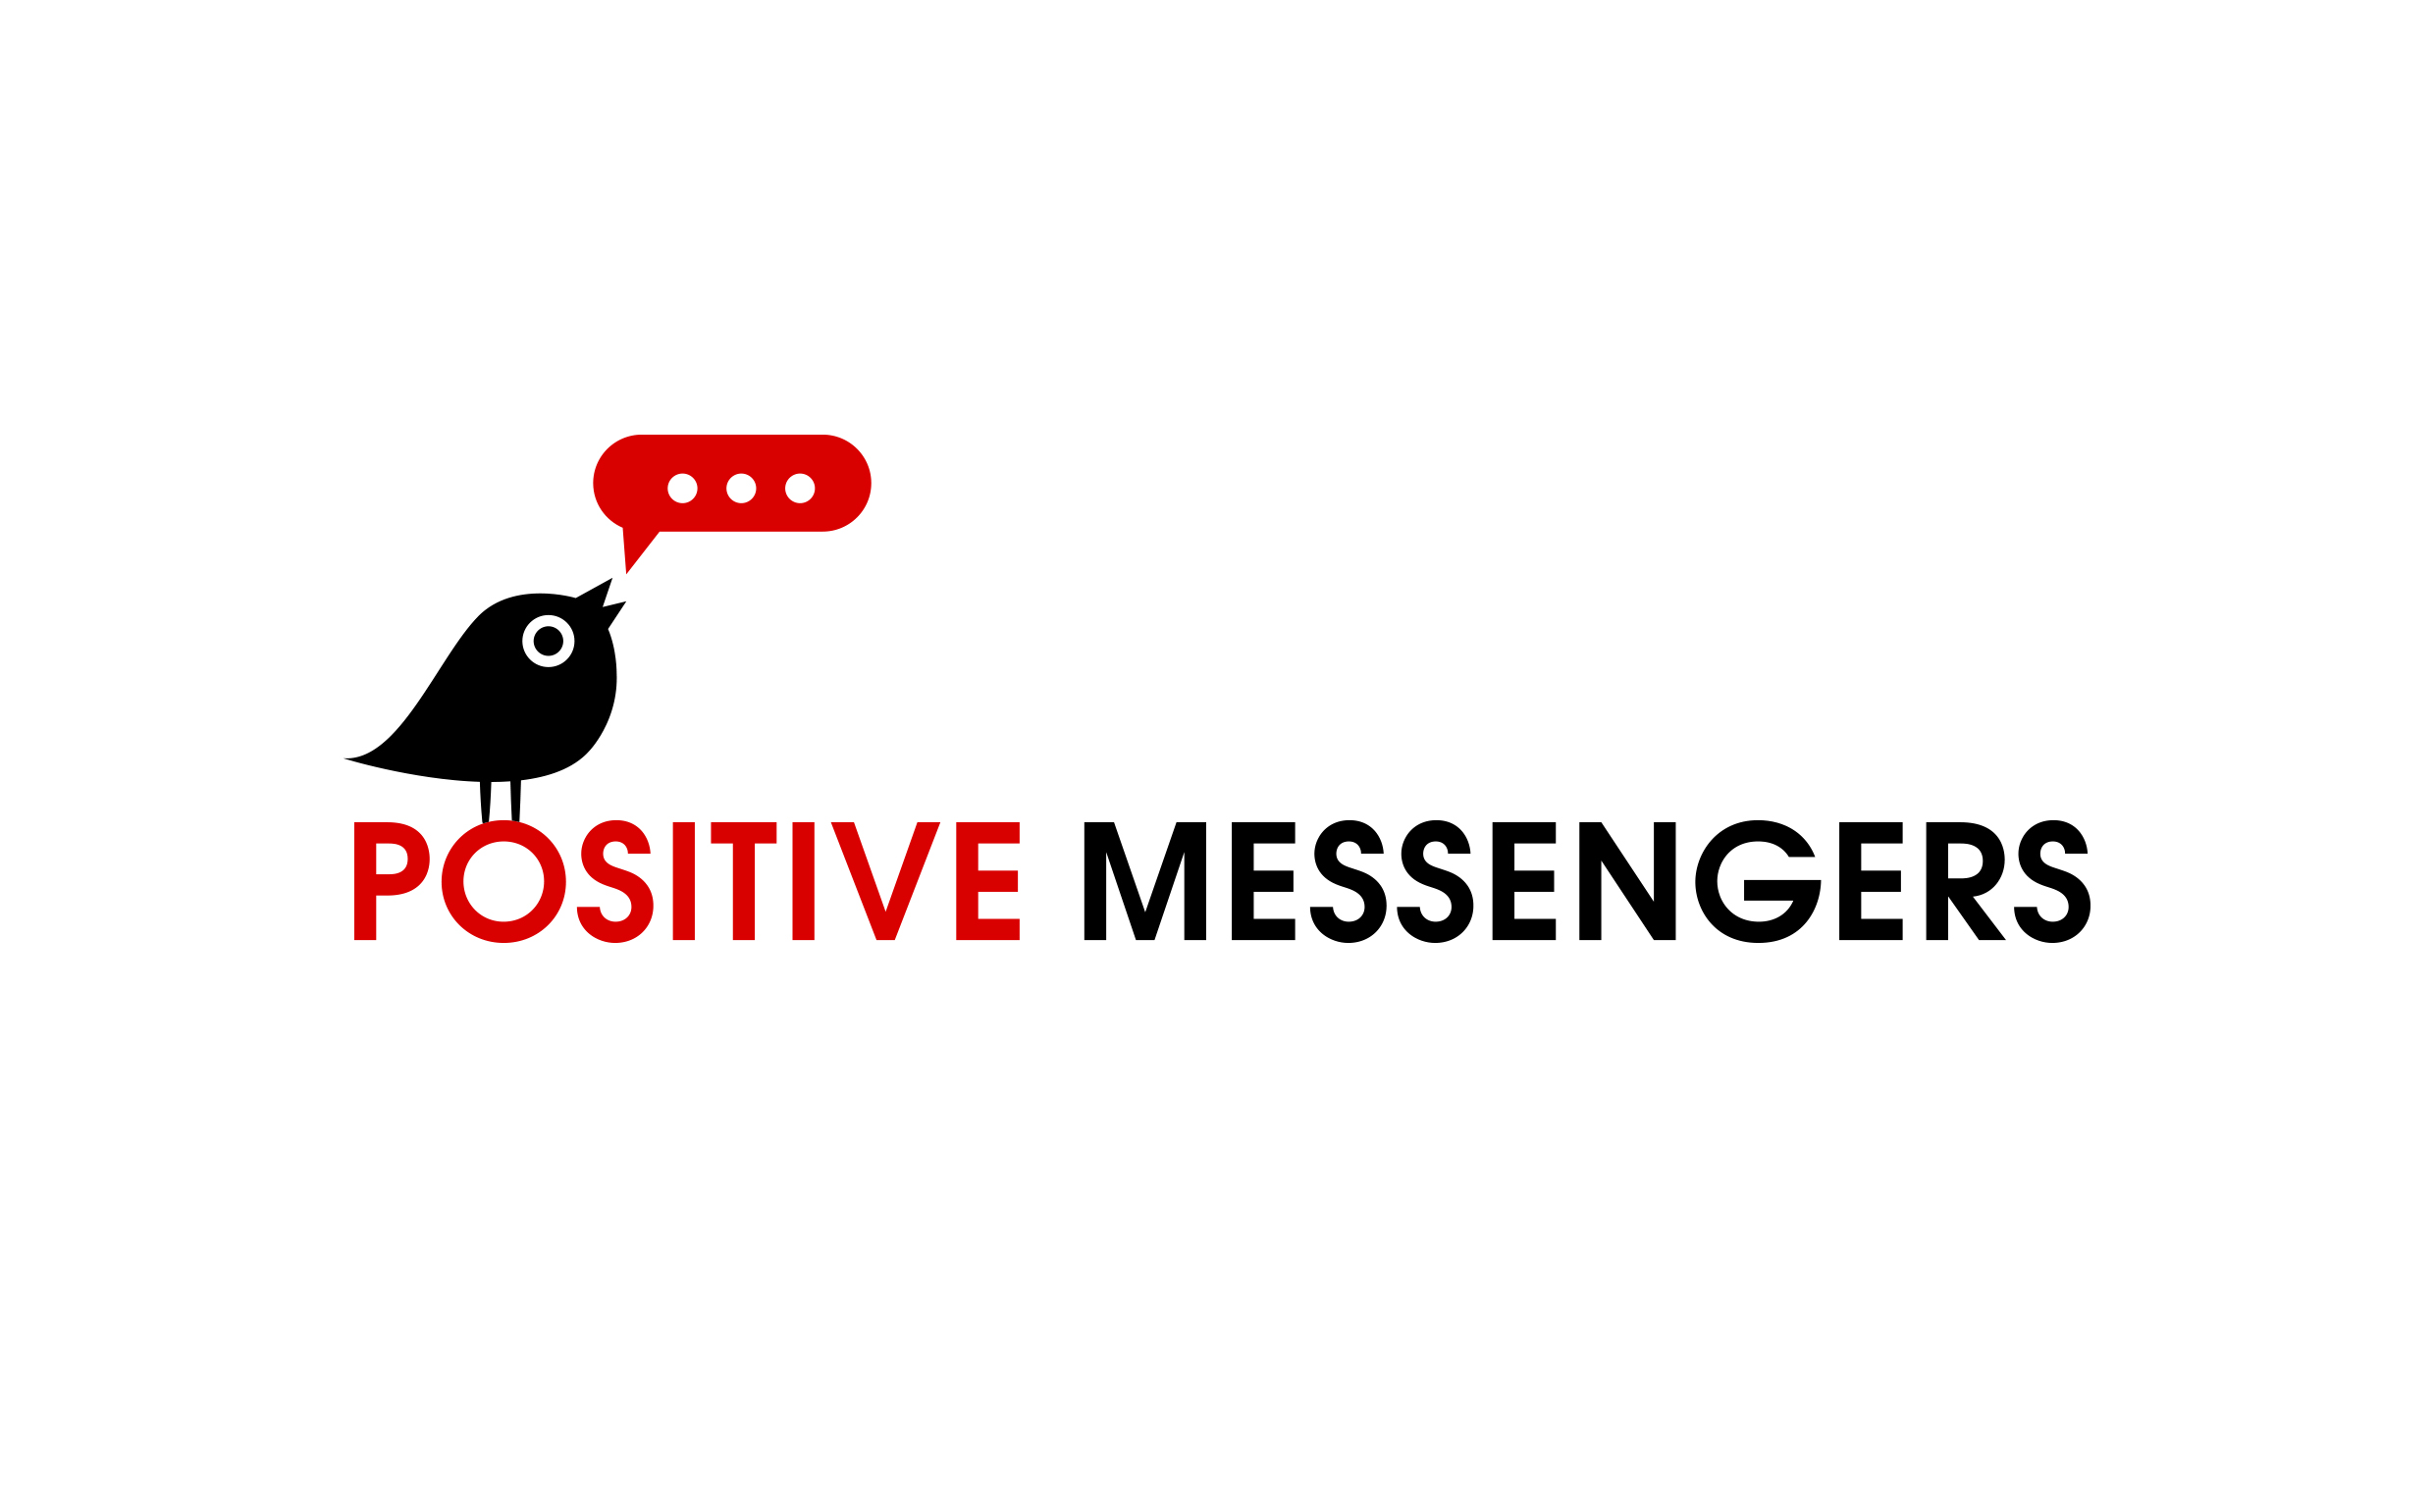 Coalition of Positive Messengers to Counter Online Hate Speech